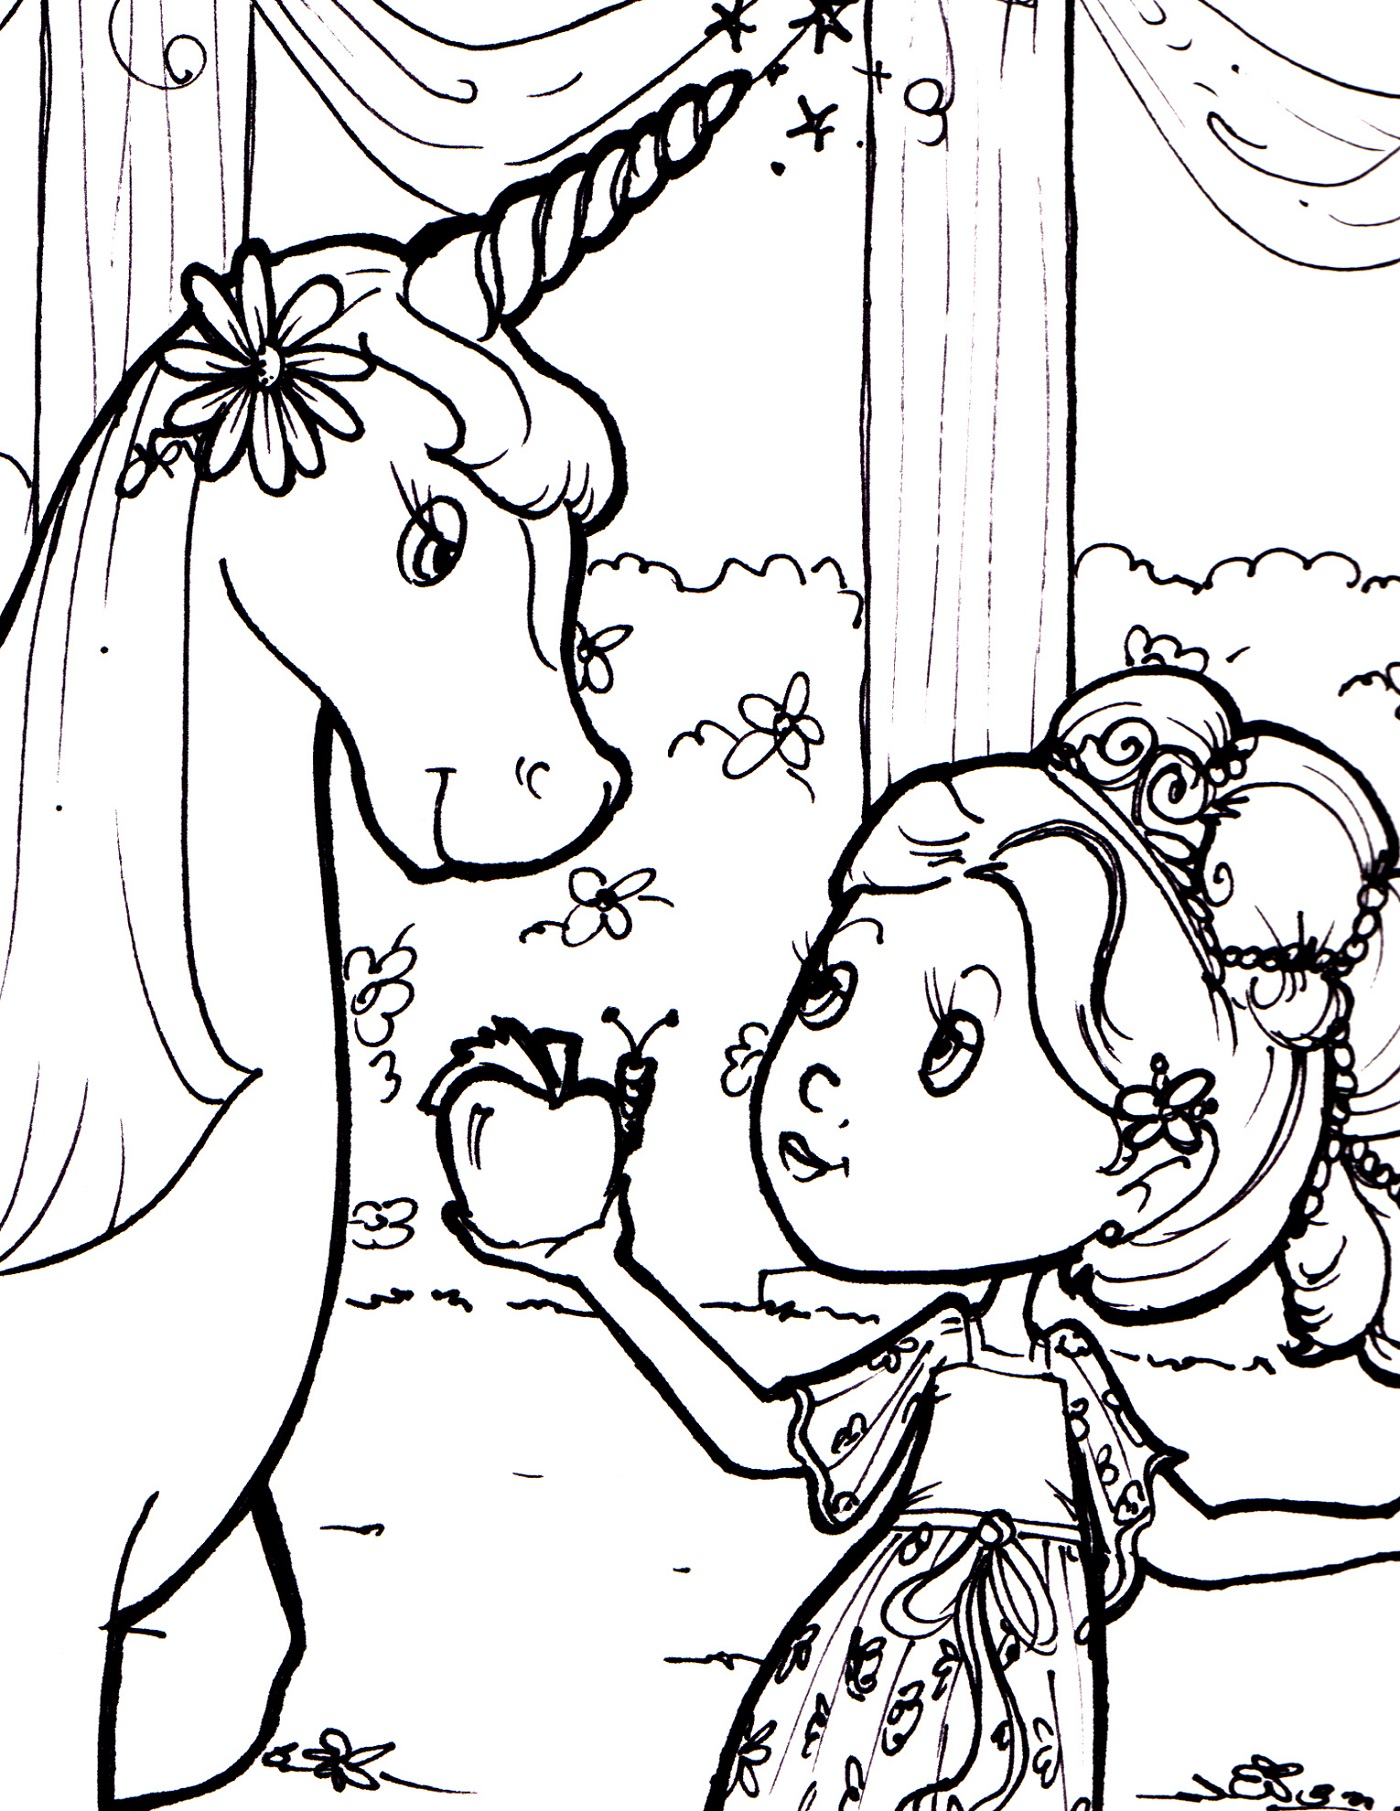 unicorn-color-page-for-kids